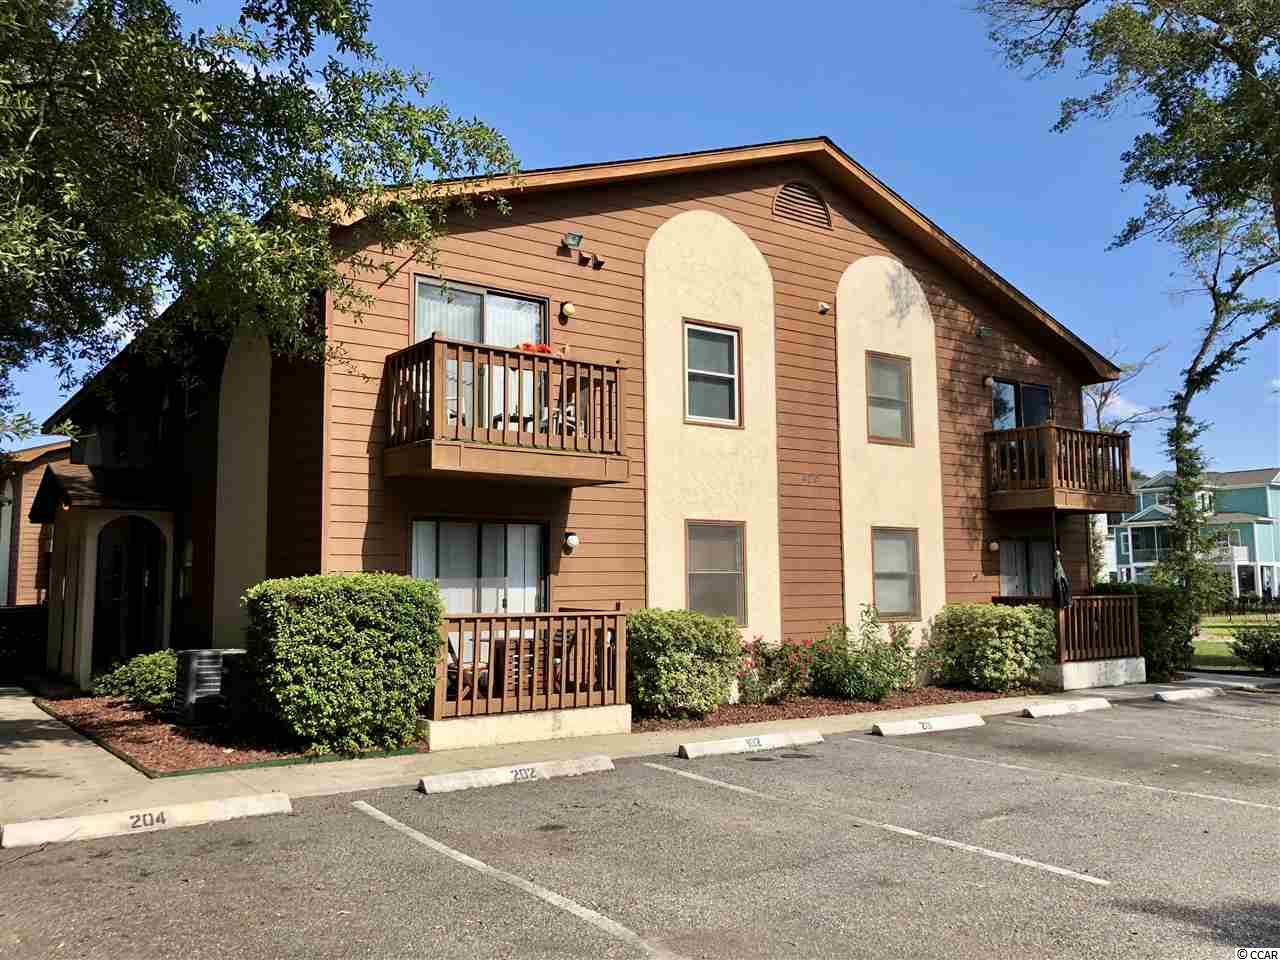 This 1 bedroom 1 full bath unit in Hacienda Gardens comes fully furnished and is a must see. Inside features a cozy and open floor plan with an abundance of natural light. This has been used as a second home and has been very well maintained. At the end of the street is a beautiful boardwalk and park on the Garden City/ Murrells Inlet Marsh. This is perfect for fishing, picnics, or letting the kids burn some energy. This unit is tucked away from all of the hustle and bustle but very close to all Garden City and Murrells Inlet have to offer. Water front dining, the Atlantic Ocean, golf, and shopping are all within a few short miles. This home is in a very desirable location and is a must see.